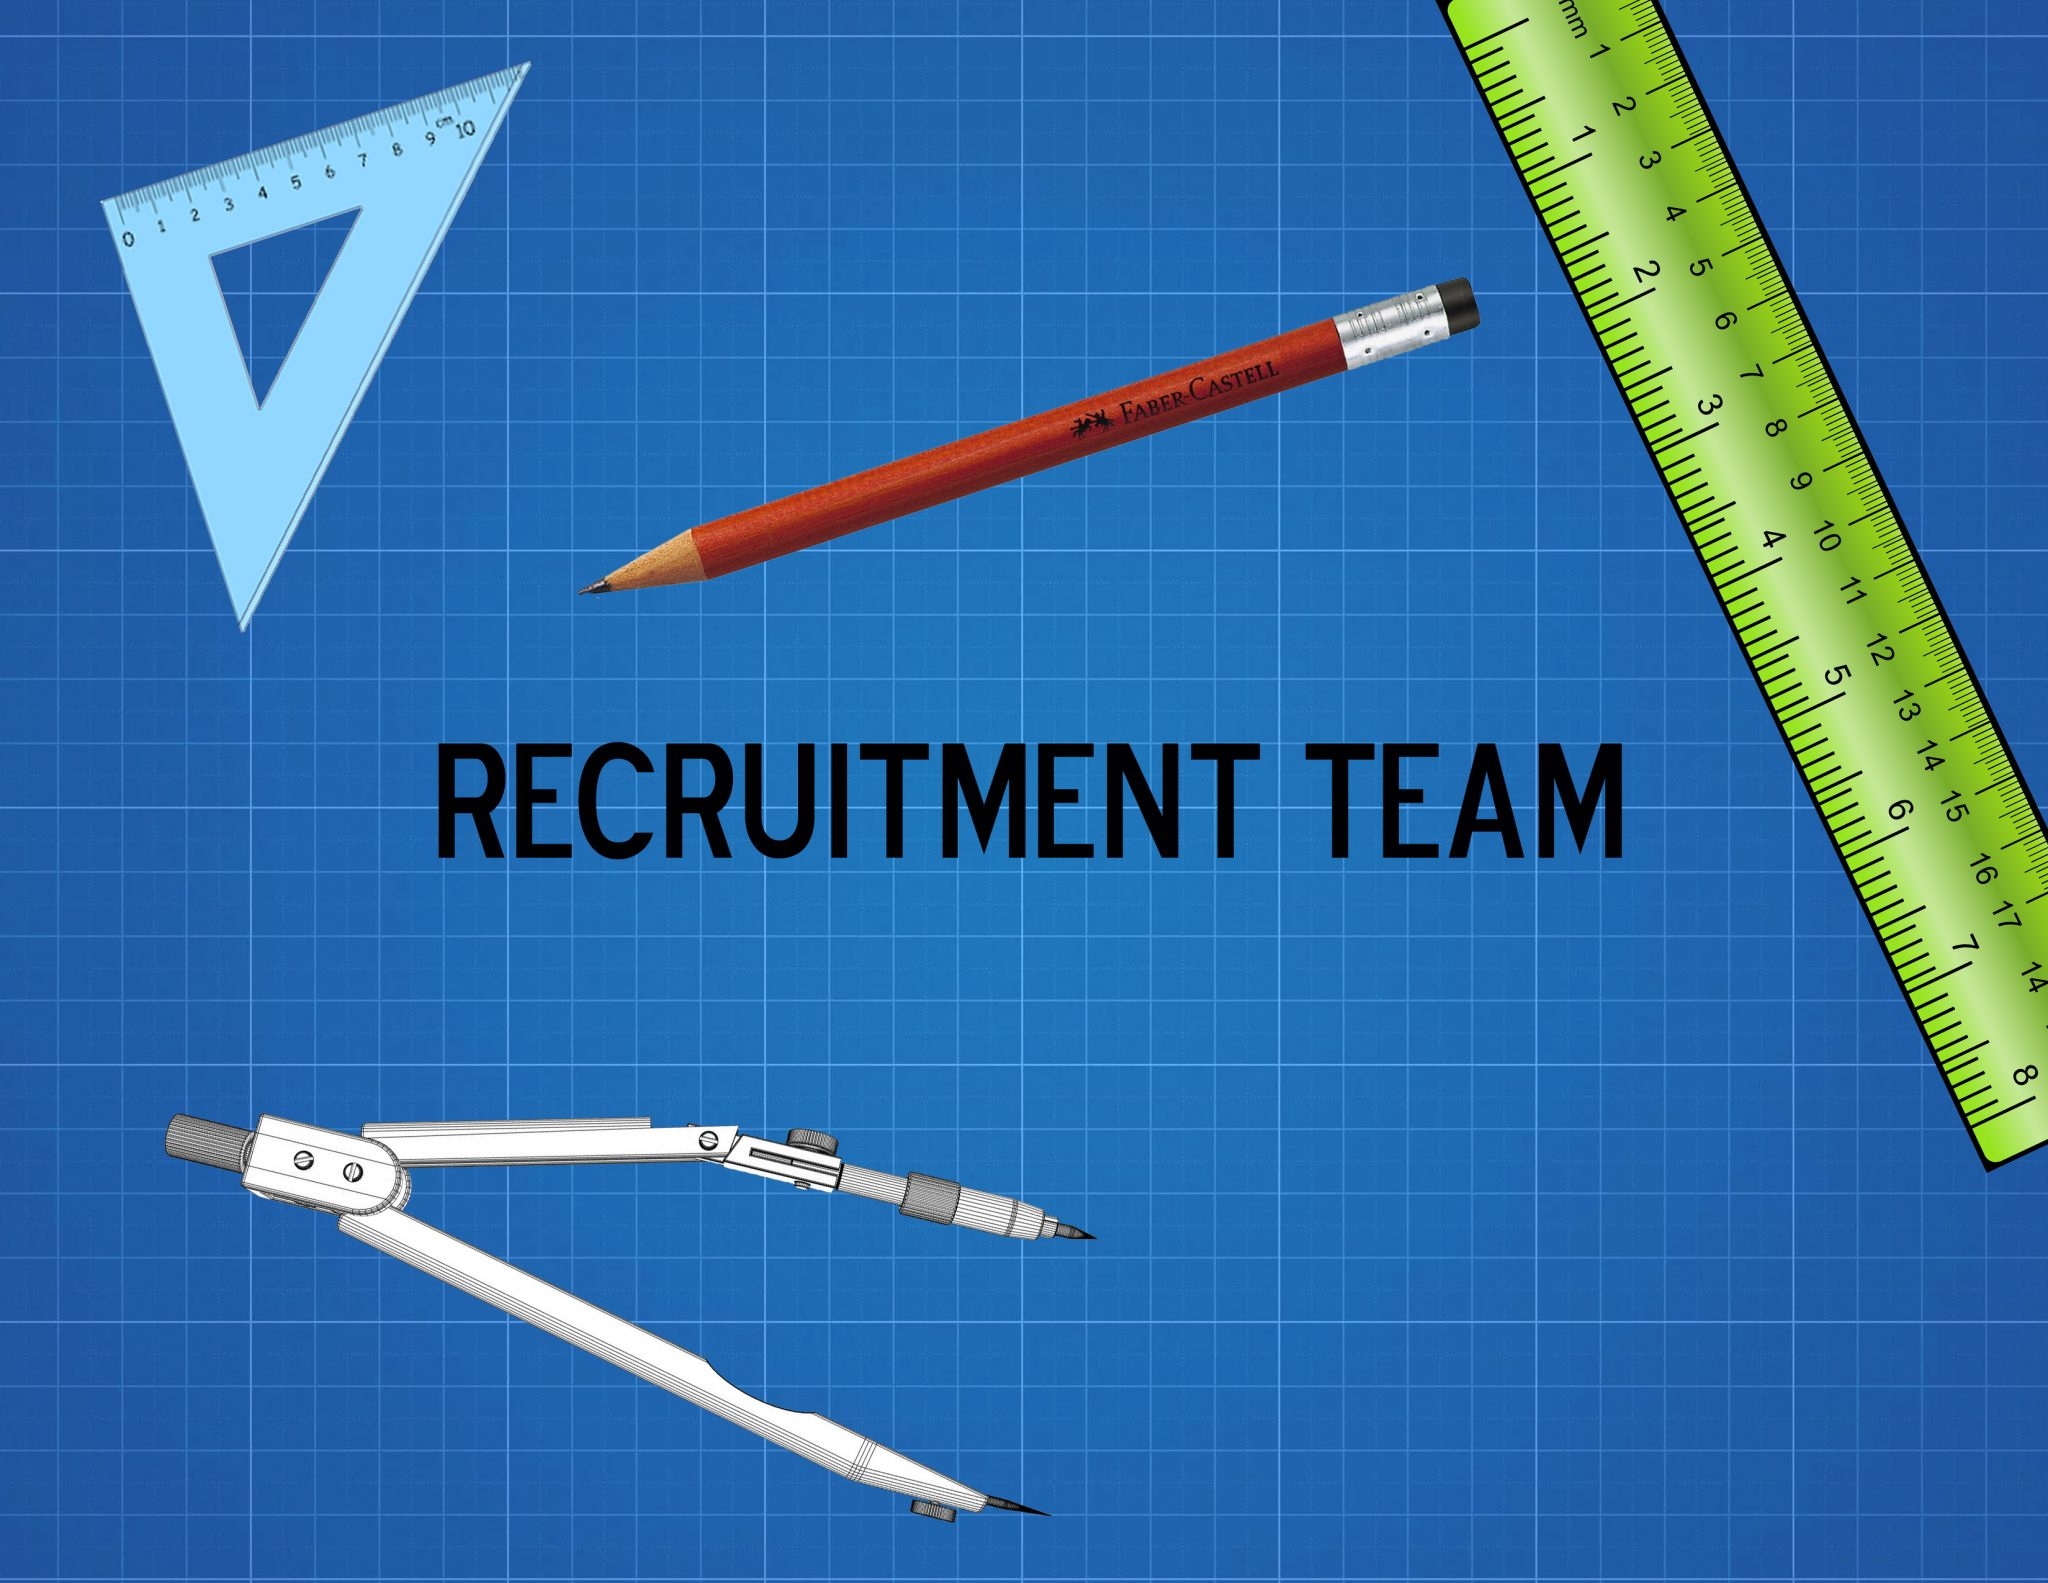 Recruitment Team